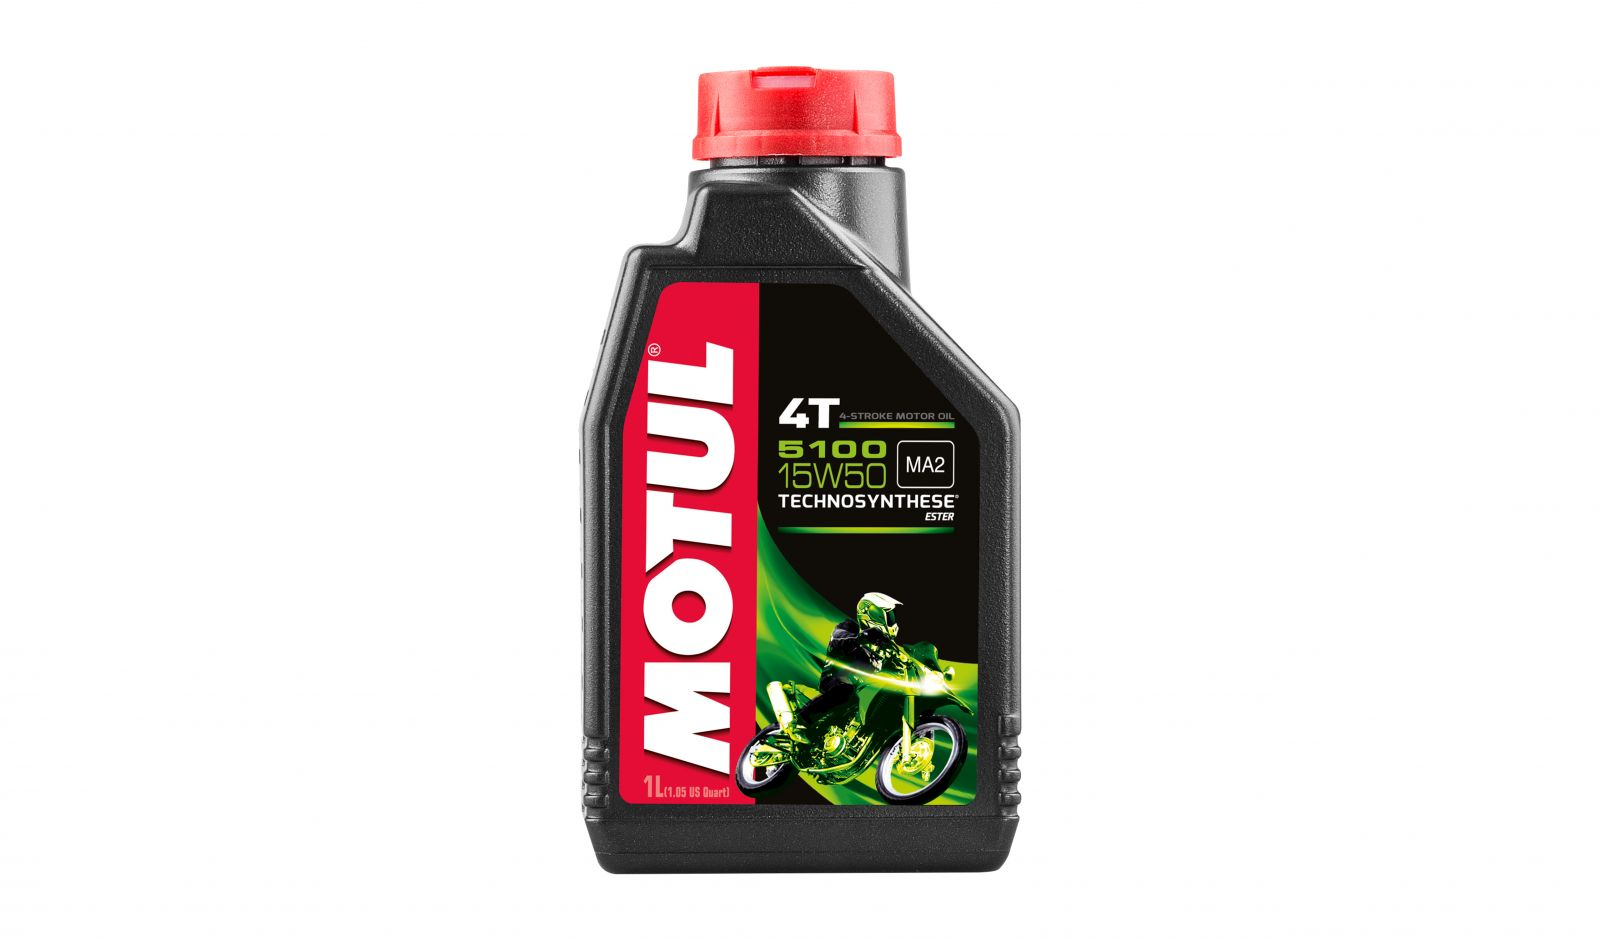 4 stroke engine oils - 670161M image